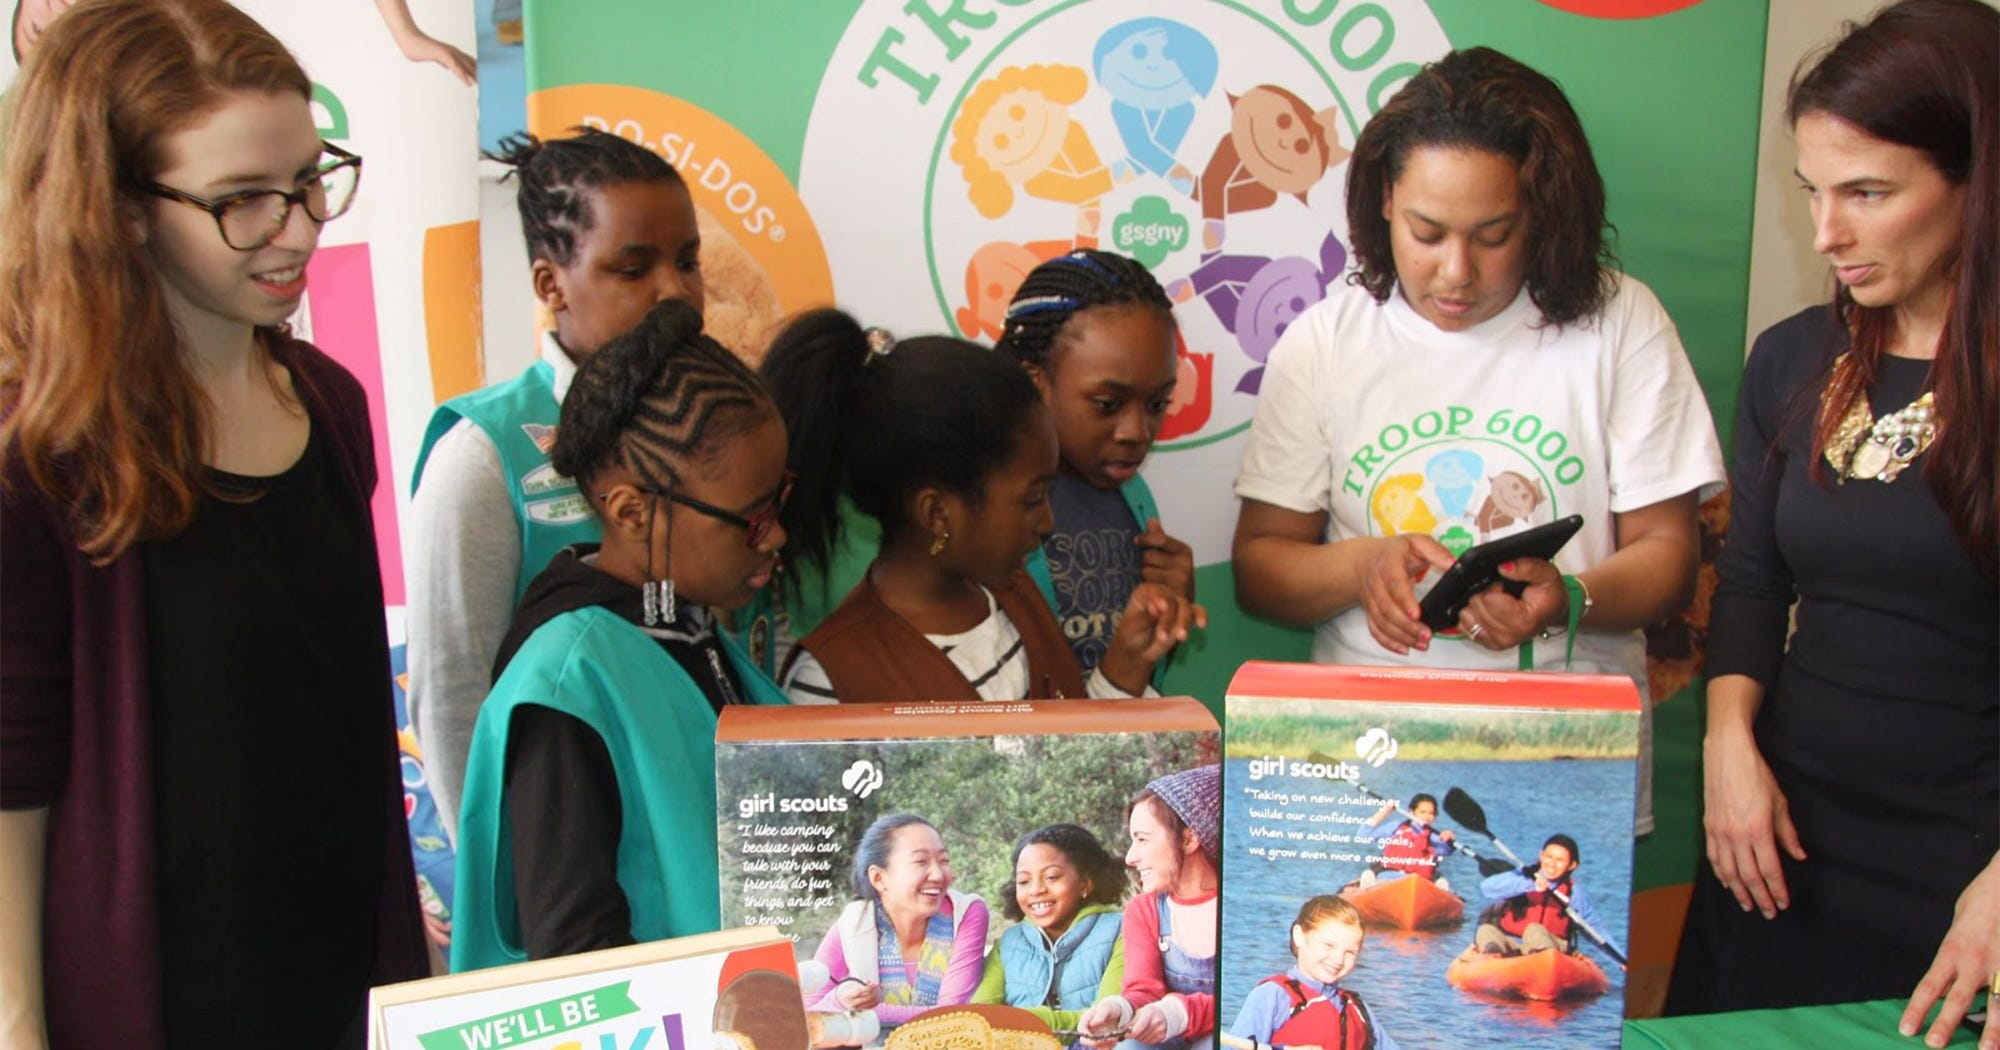 Homeless Shelter Based Girl Scouts Troop Sells More Than 32,000 Boxes Of Cookies At First Sale